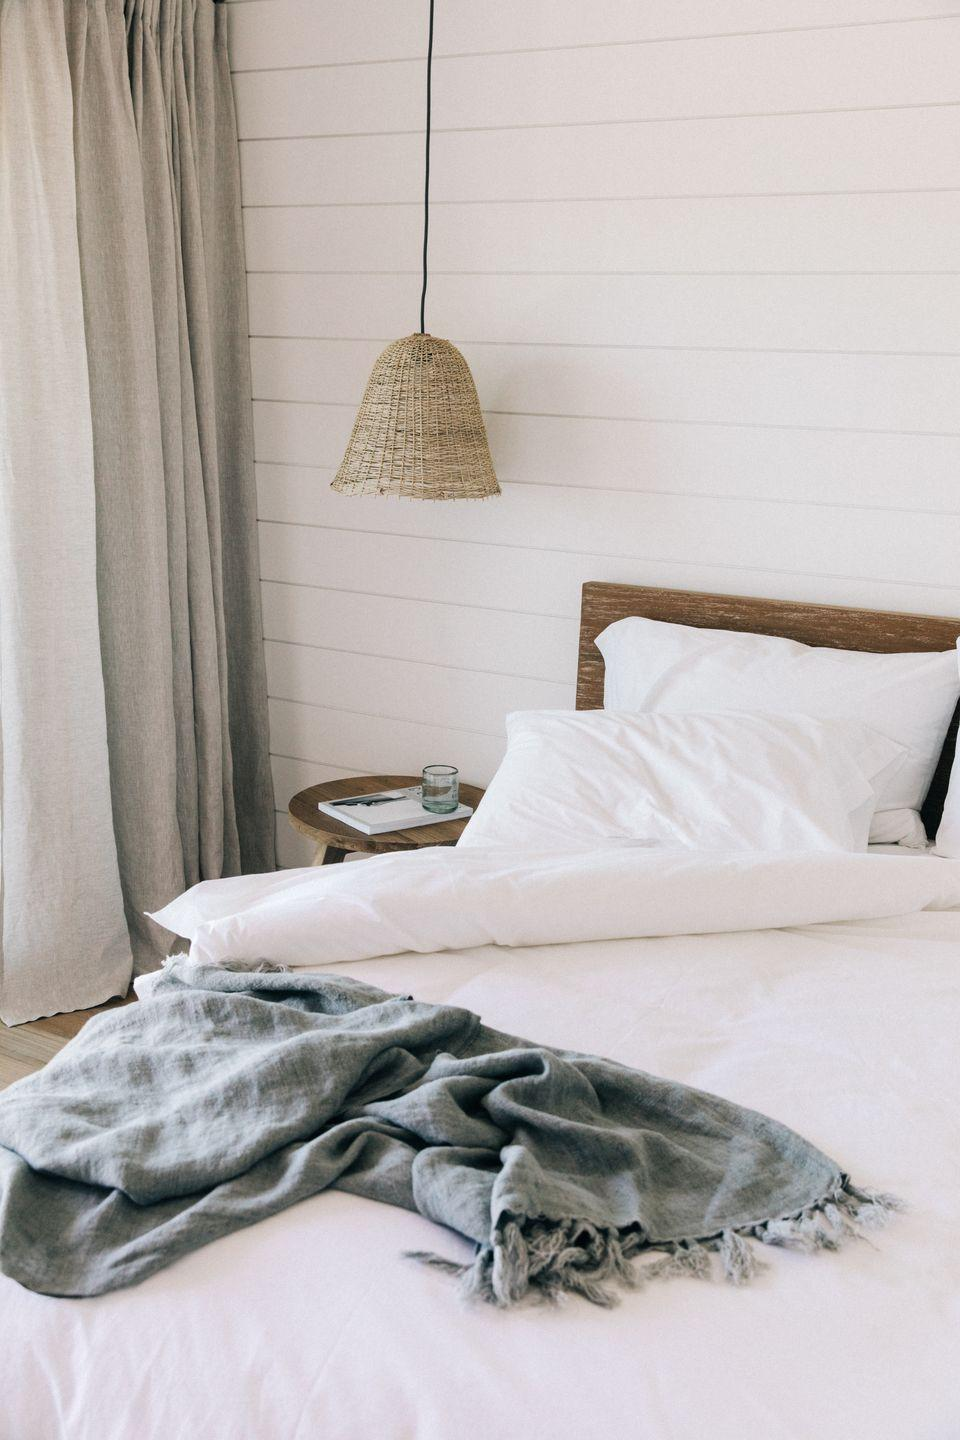 """<p>Emma Goodwin and her husband, Matthew, became first-time hoteliers as they painstakingly restored the run-down Surfrider Motel on an enviable stretch of Malibu beachfront into <a href=""""https://thesurfridermalibu.com/"""" rel=""""nofollow noopener"""" target=""""_blank"""" data-ylk=""""slk:The Surfrider"""" class=""""link rapid-noclick-resp"""">The Surfrider</a> Malibu. Matthew, an architect, and Emma, an interior designer, created not only an Instagram-worthy hotel but a living embodiment of Southern California's lifestyle, food, and culture. They became multi-hyphenates as landscape designers, recipe testers, and music curators to create the hotel.</p><p><strong>What does boutique hotel style mean to you?</strong></p><p>""""A boutique hotel allows for really beautiful scale. I often look at places who call themselves boutique hotels but are more lifestyle hotels. Boutique hotels are large enough to make an impact, create a real sense of energy, and tell a real story but small enough to do so with quality materials and details with a secret language that tells the story along the way.</p><p>""""On the other side of that, it's more than just finishings and furniture. It's about so much more: the weather, what music is playing, what food is being served, the scent throughout. All of those little touch points define what design is in a boutique hotel space. What the message is from the confirmation email to how you're greeted to the service of the food.""""<br></p>"""